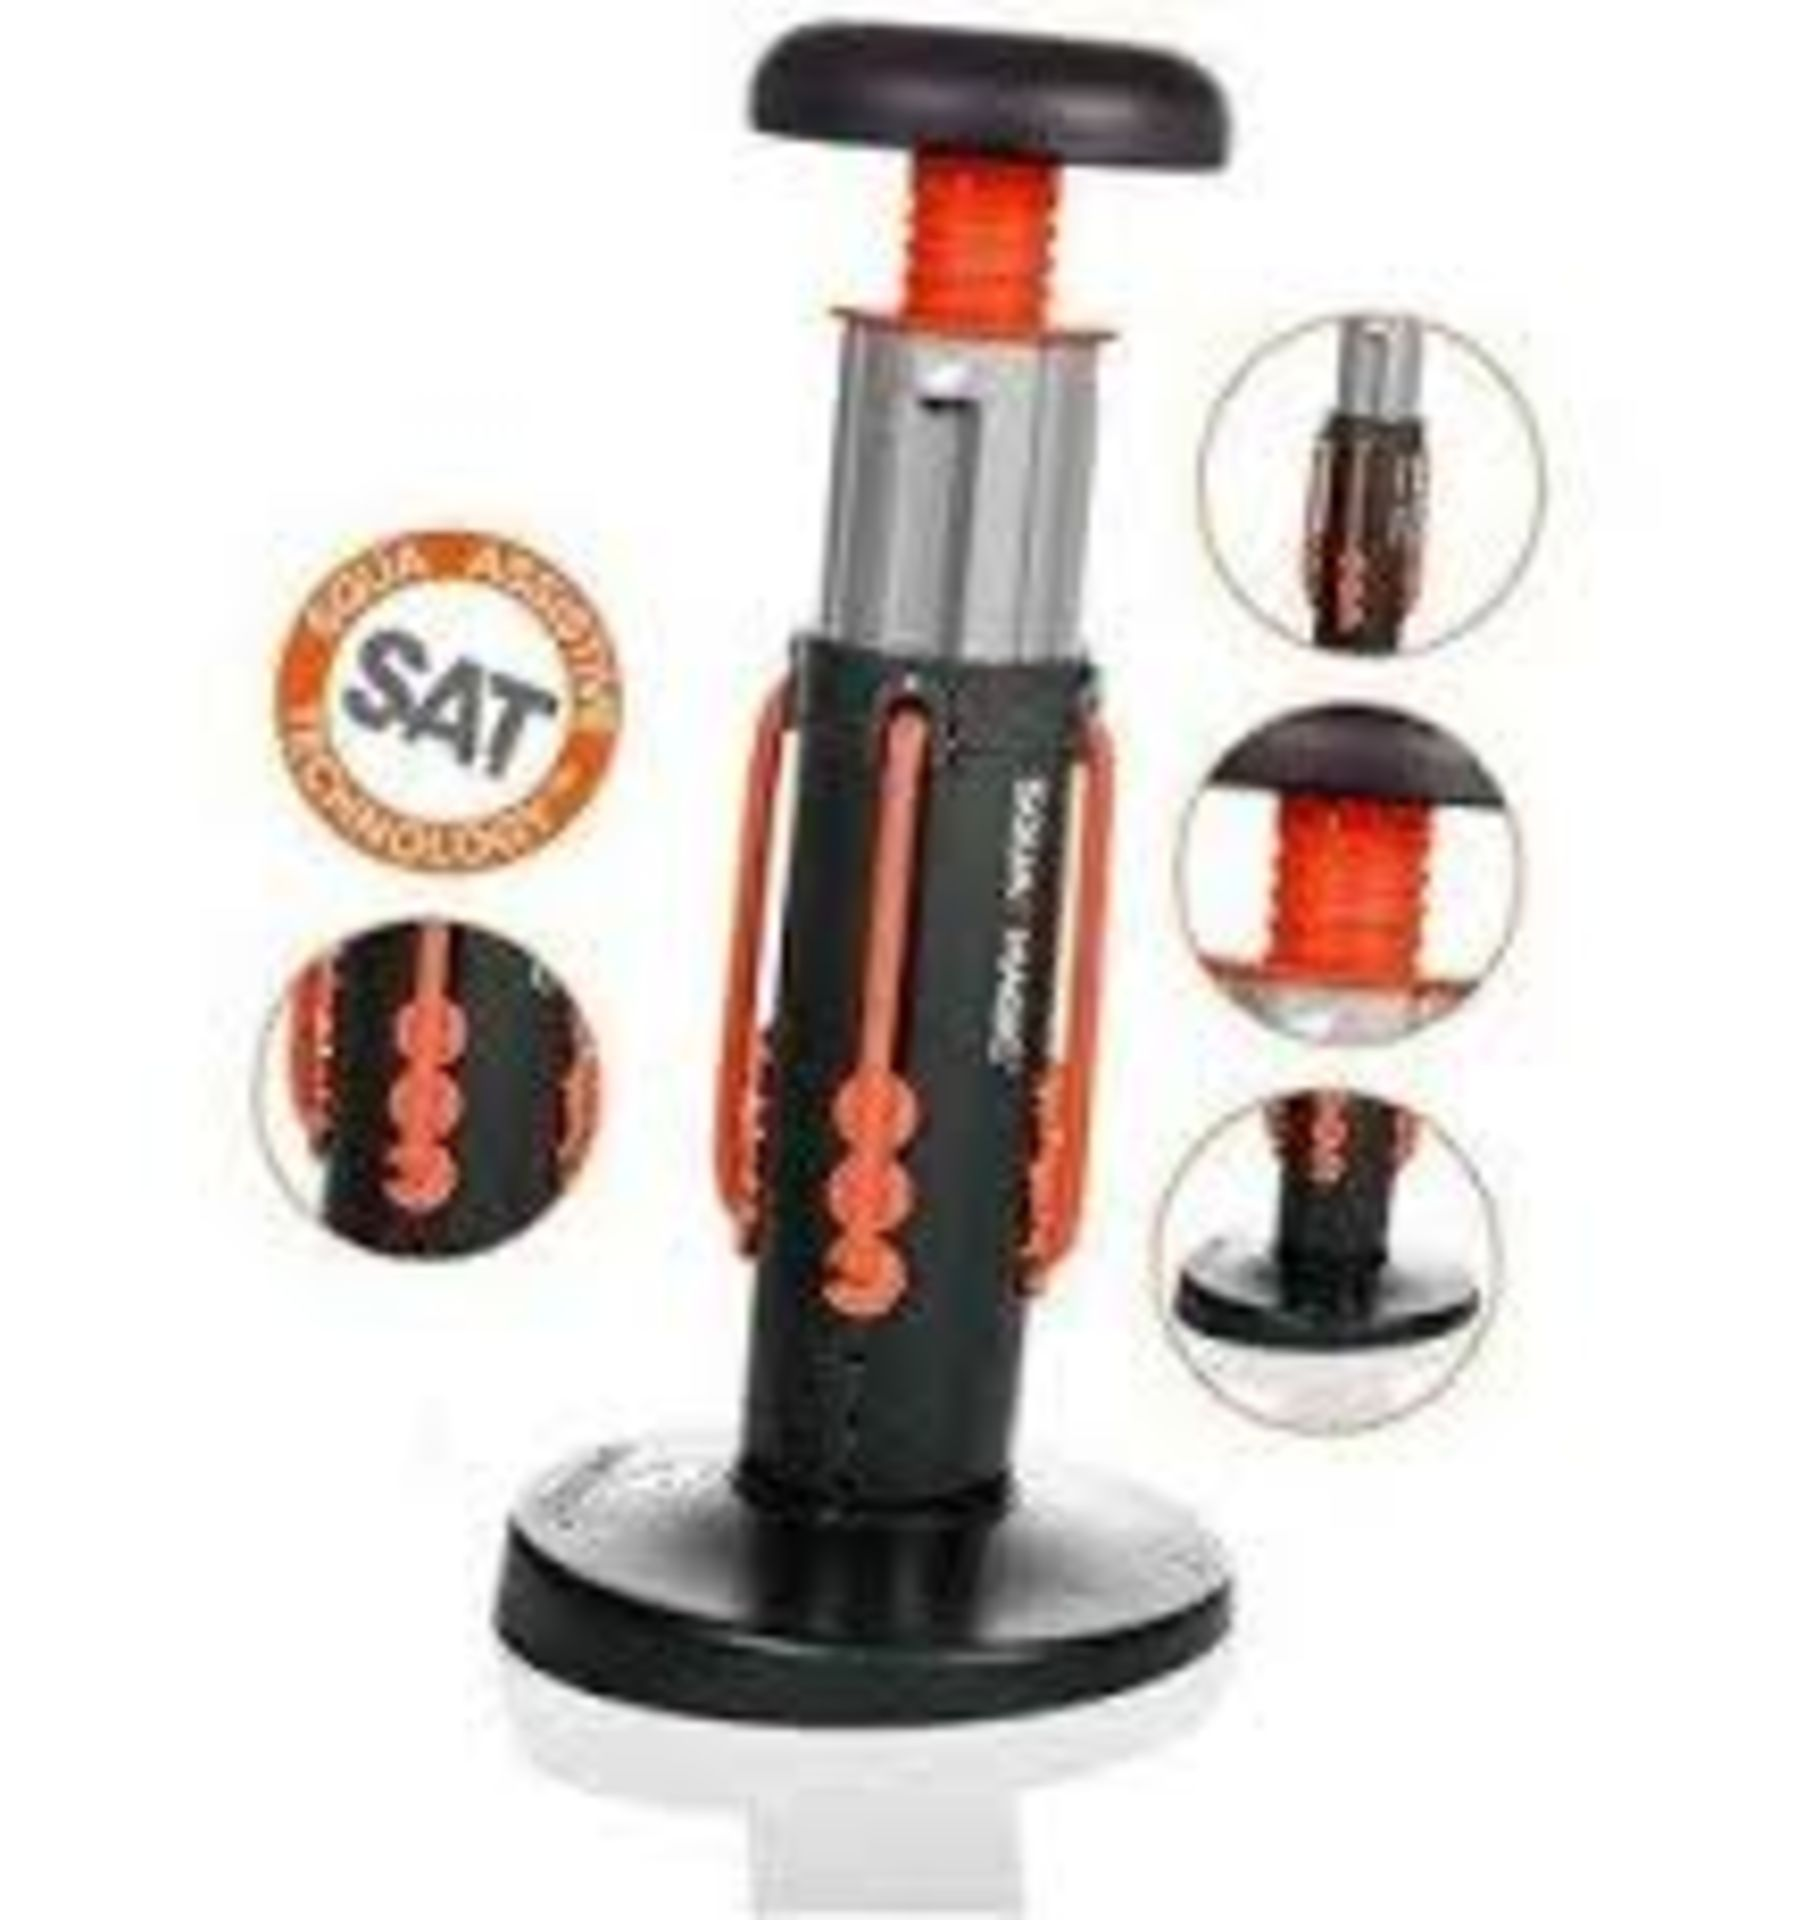 Brand New Clubfit - Adjustable Power Hand Grips (10 Kg - 40 Kg) Rrp 16.99 - Image 2 of 5